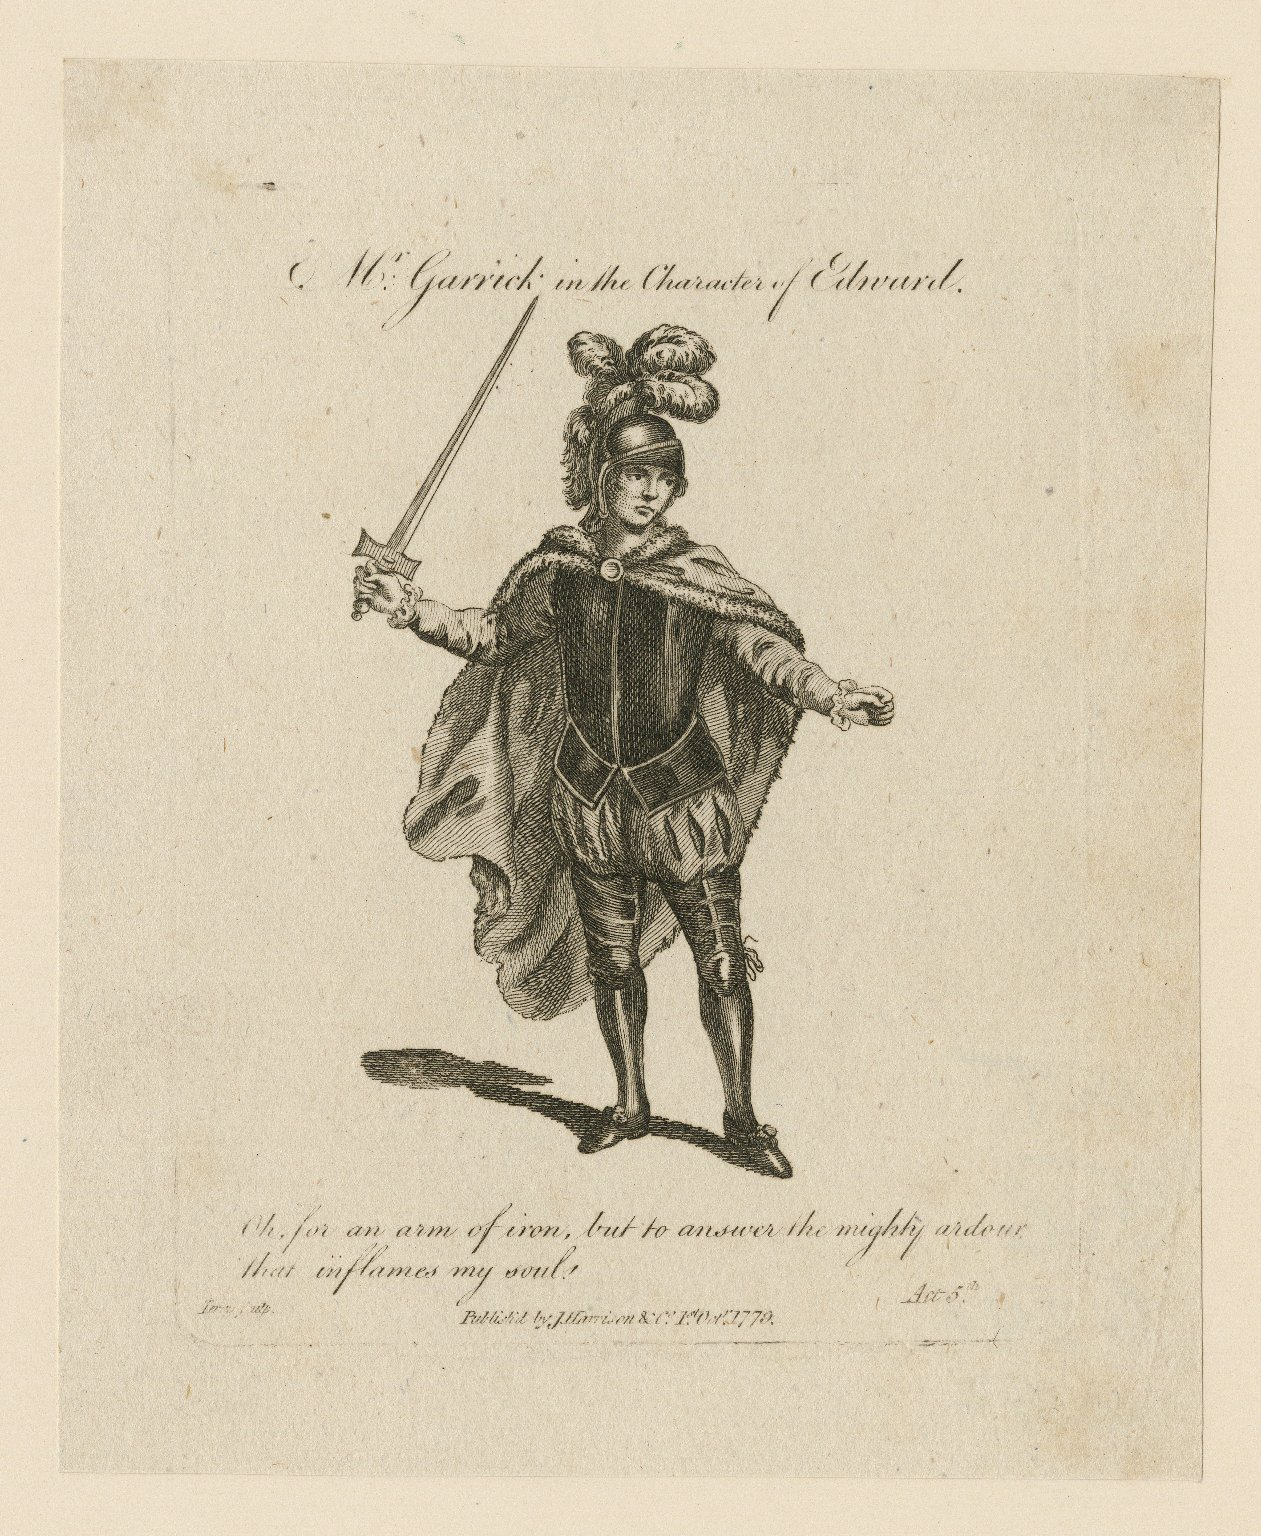 Mr. Garrick in the character of Edward ... [in Shirley's Edward the black prince] [graphic] / Terry sculp.